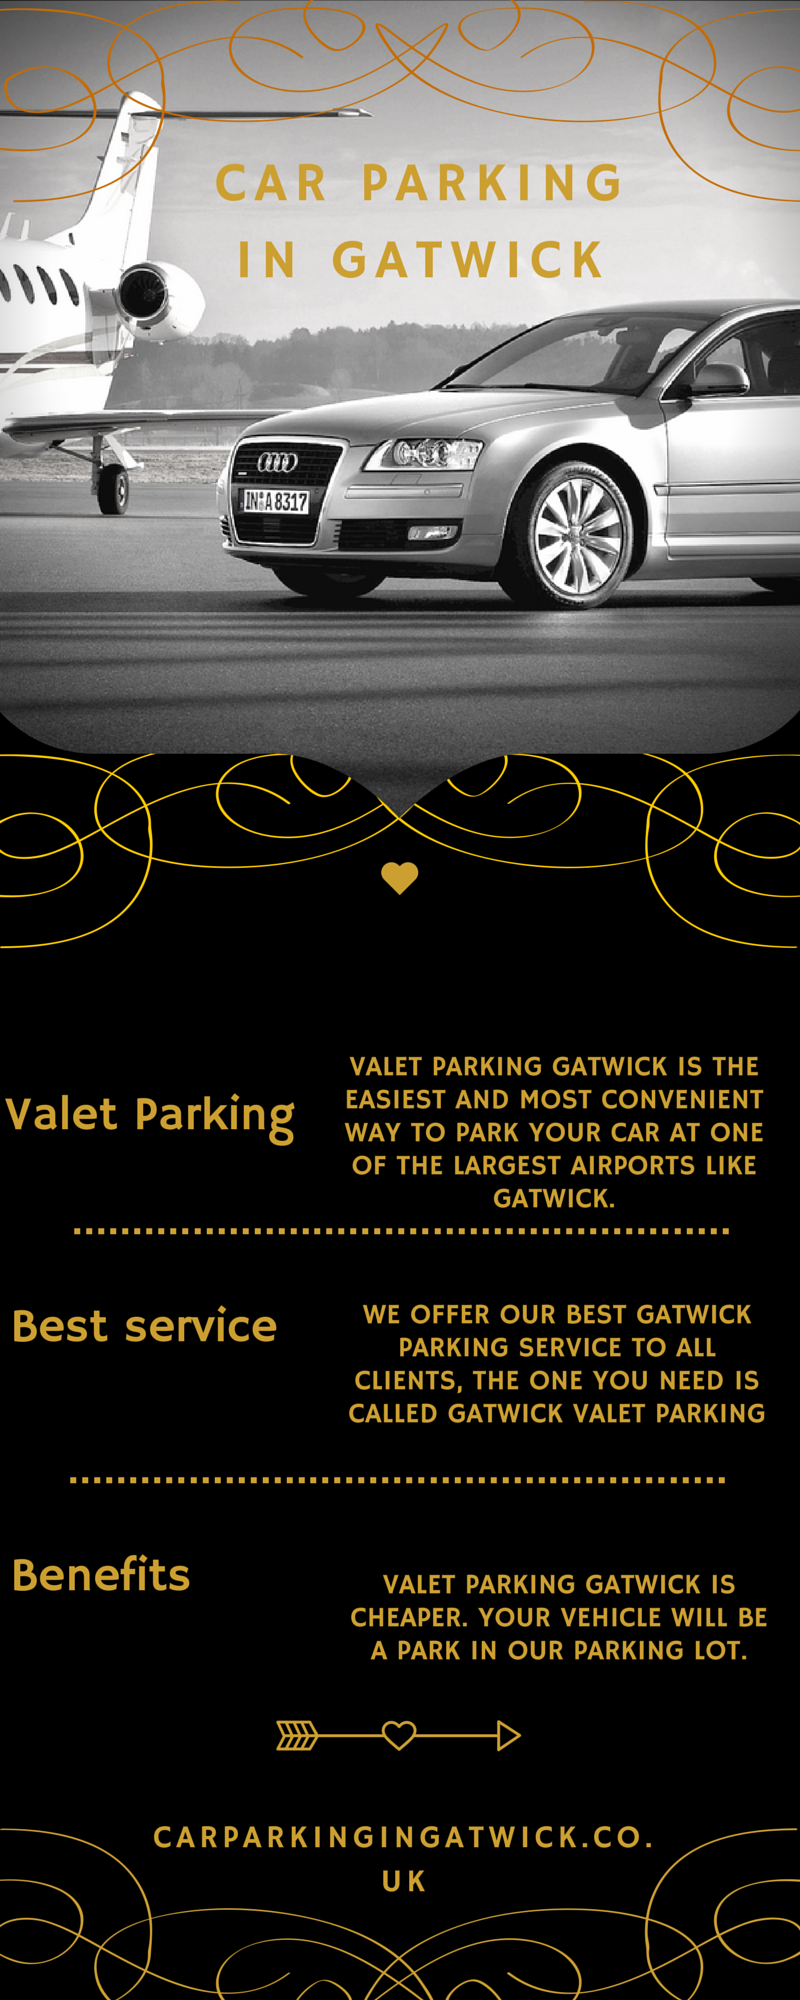 Our meetandgreet and valetparking are the best way to park your our meetandgreet and valetparking are the best way to park your car at gatwick airport simply drive to the terminal and we will park your vehicle safe kristyandbryce Image collections